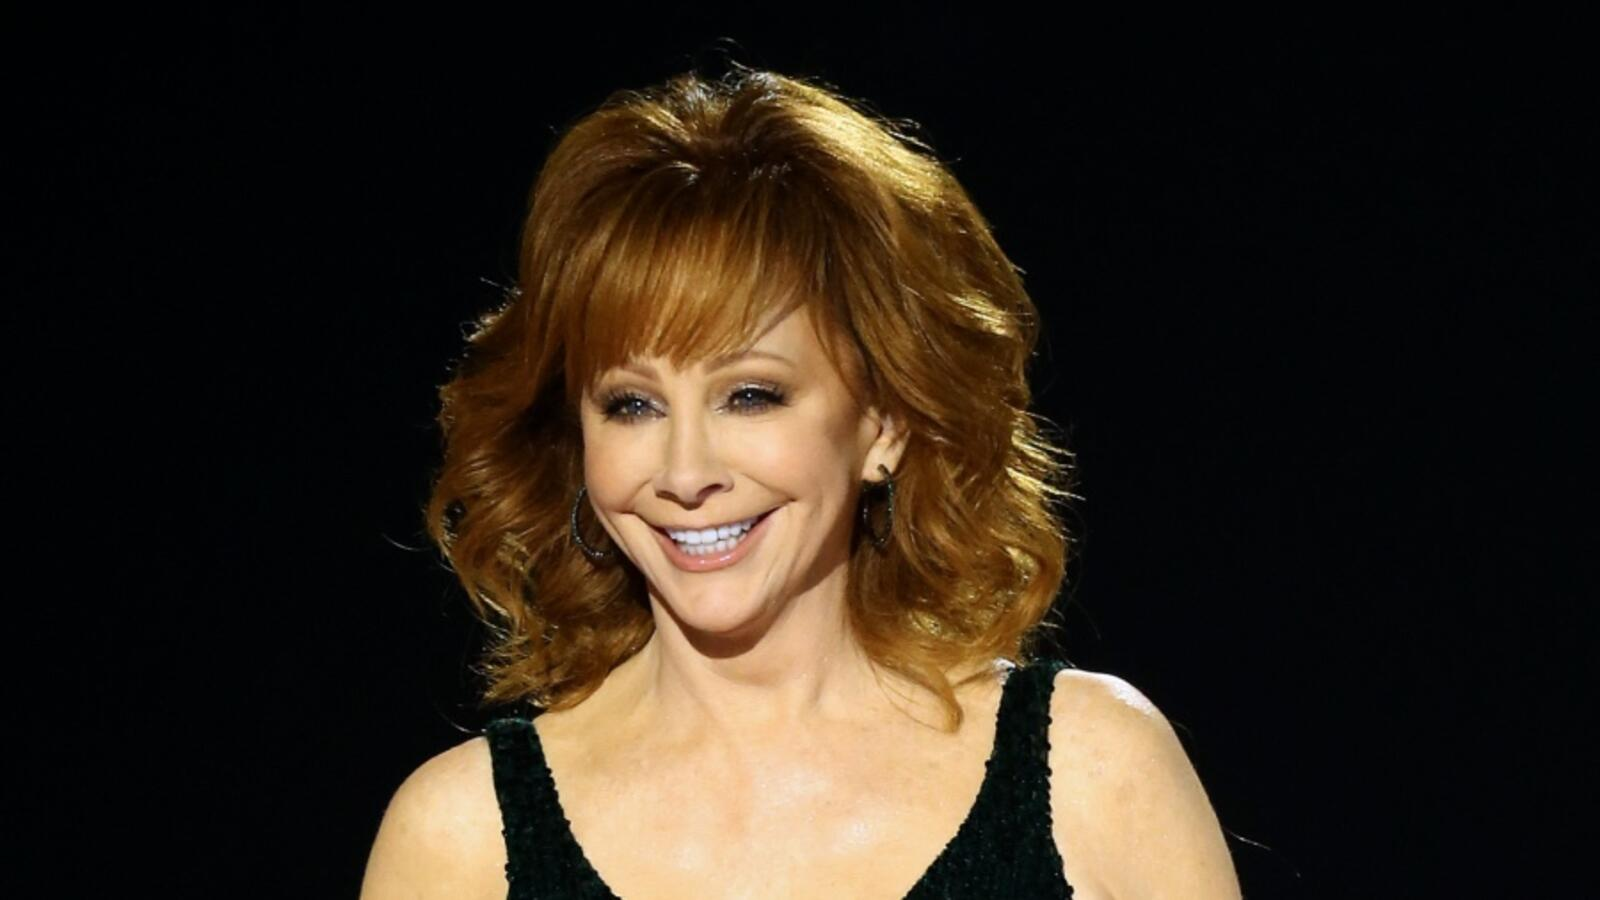 Reba McEntire Thanks First Responders Following Stair Collapse